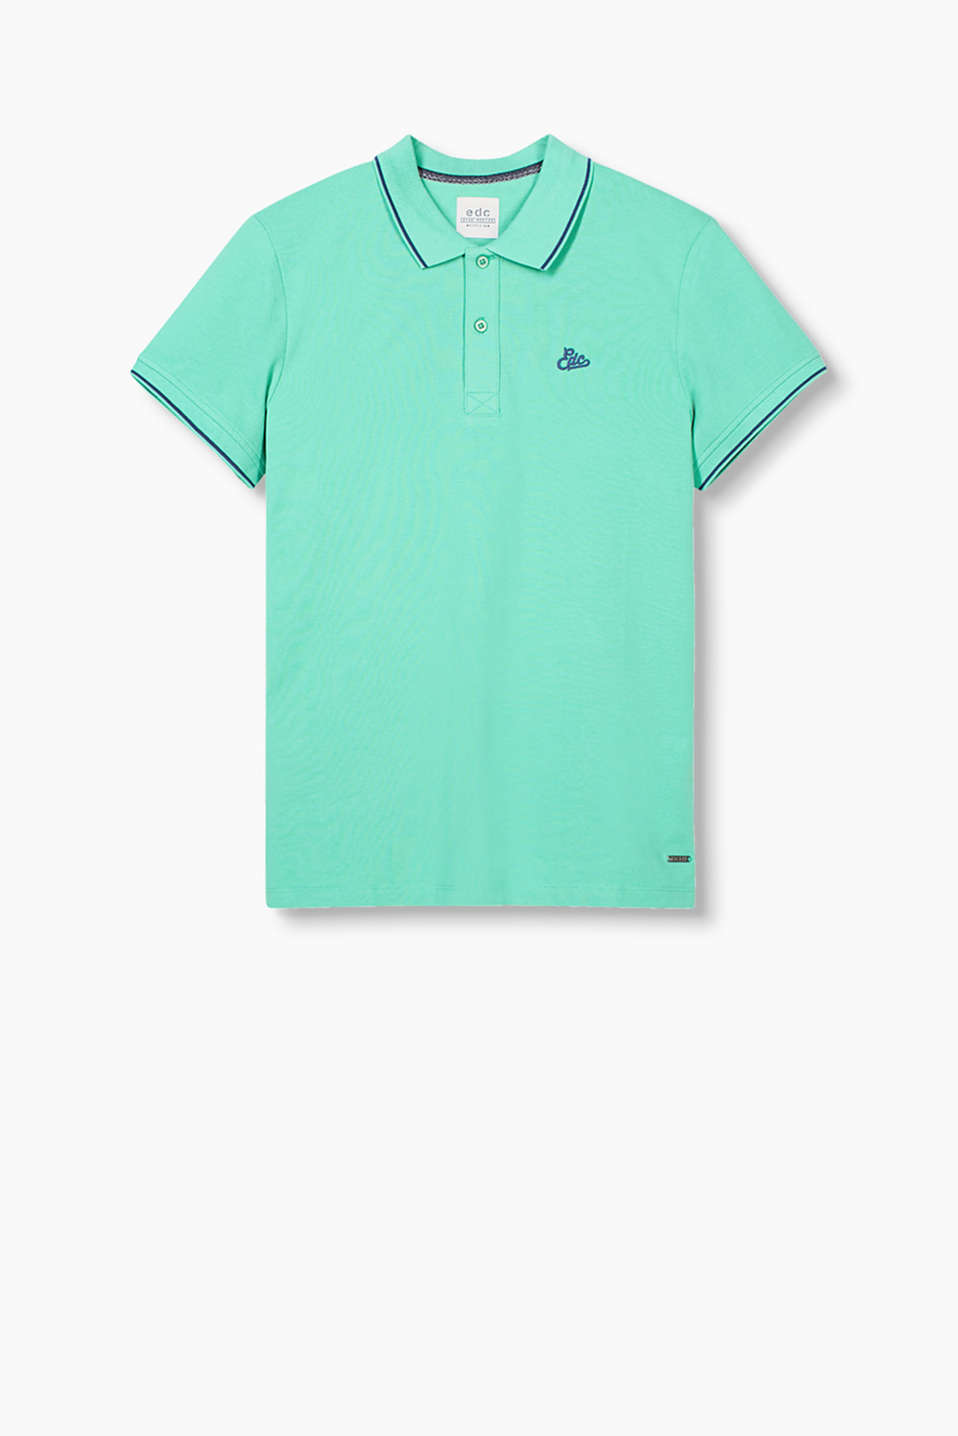 Smart and sporty cotton polo shirt in piqué fabric with an accent edge and an edc logo